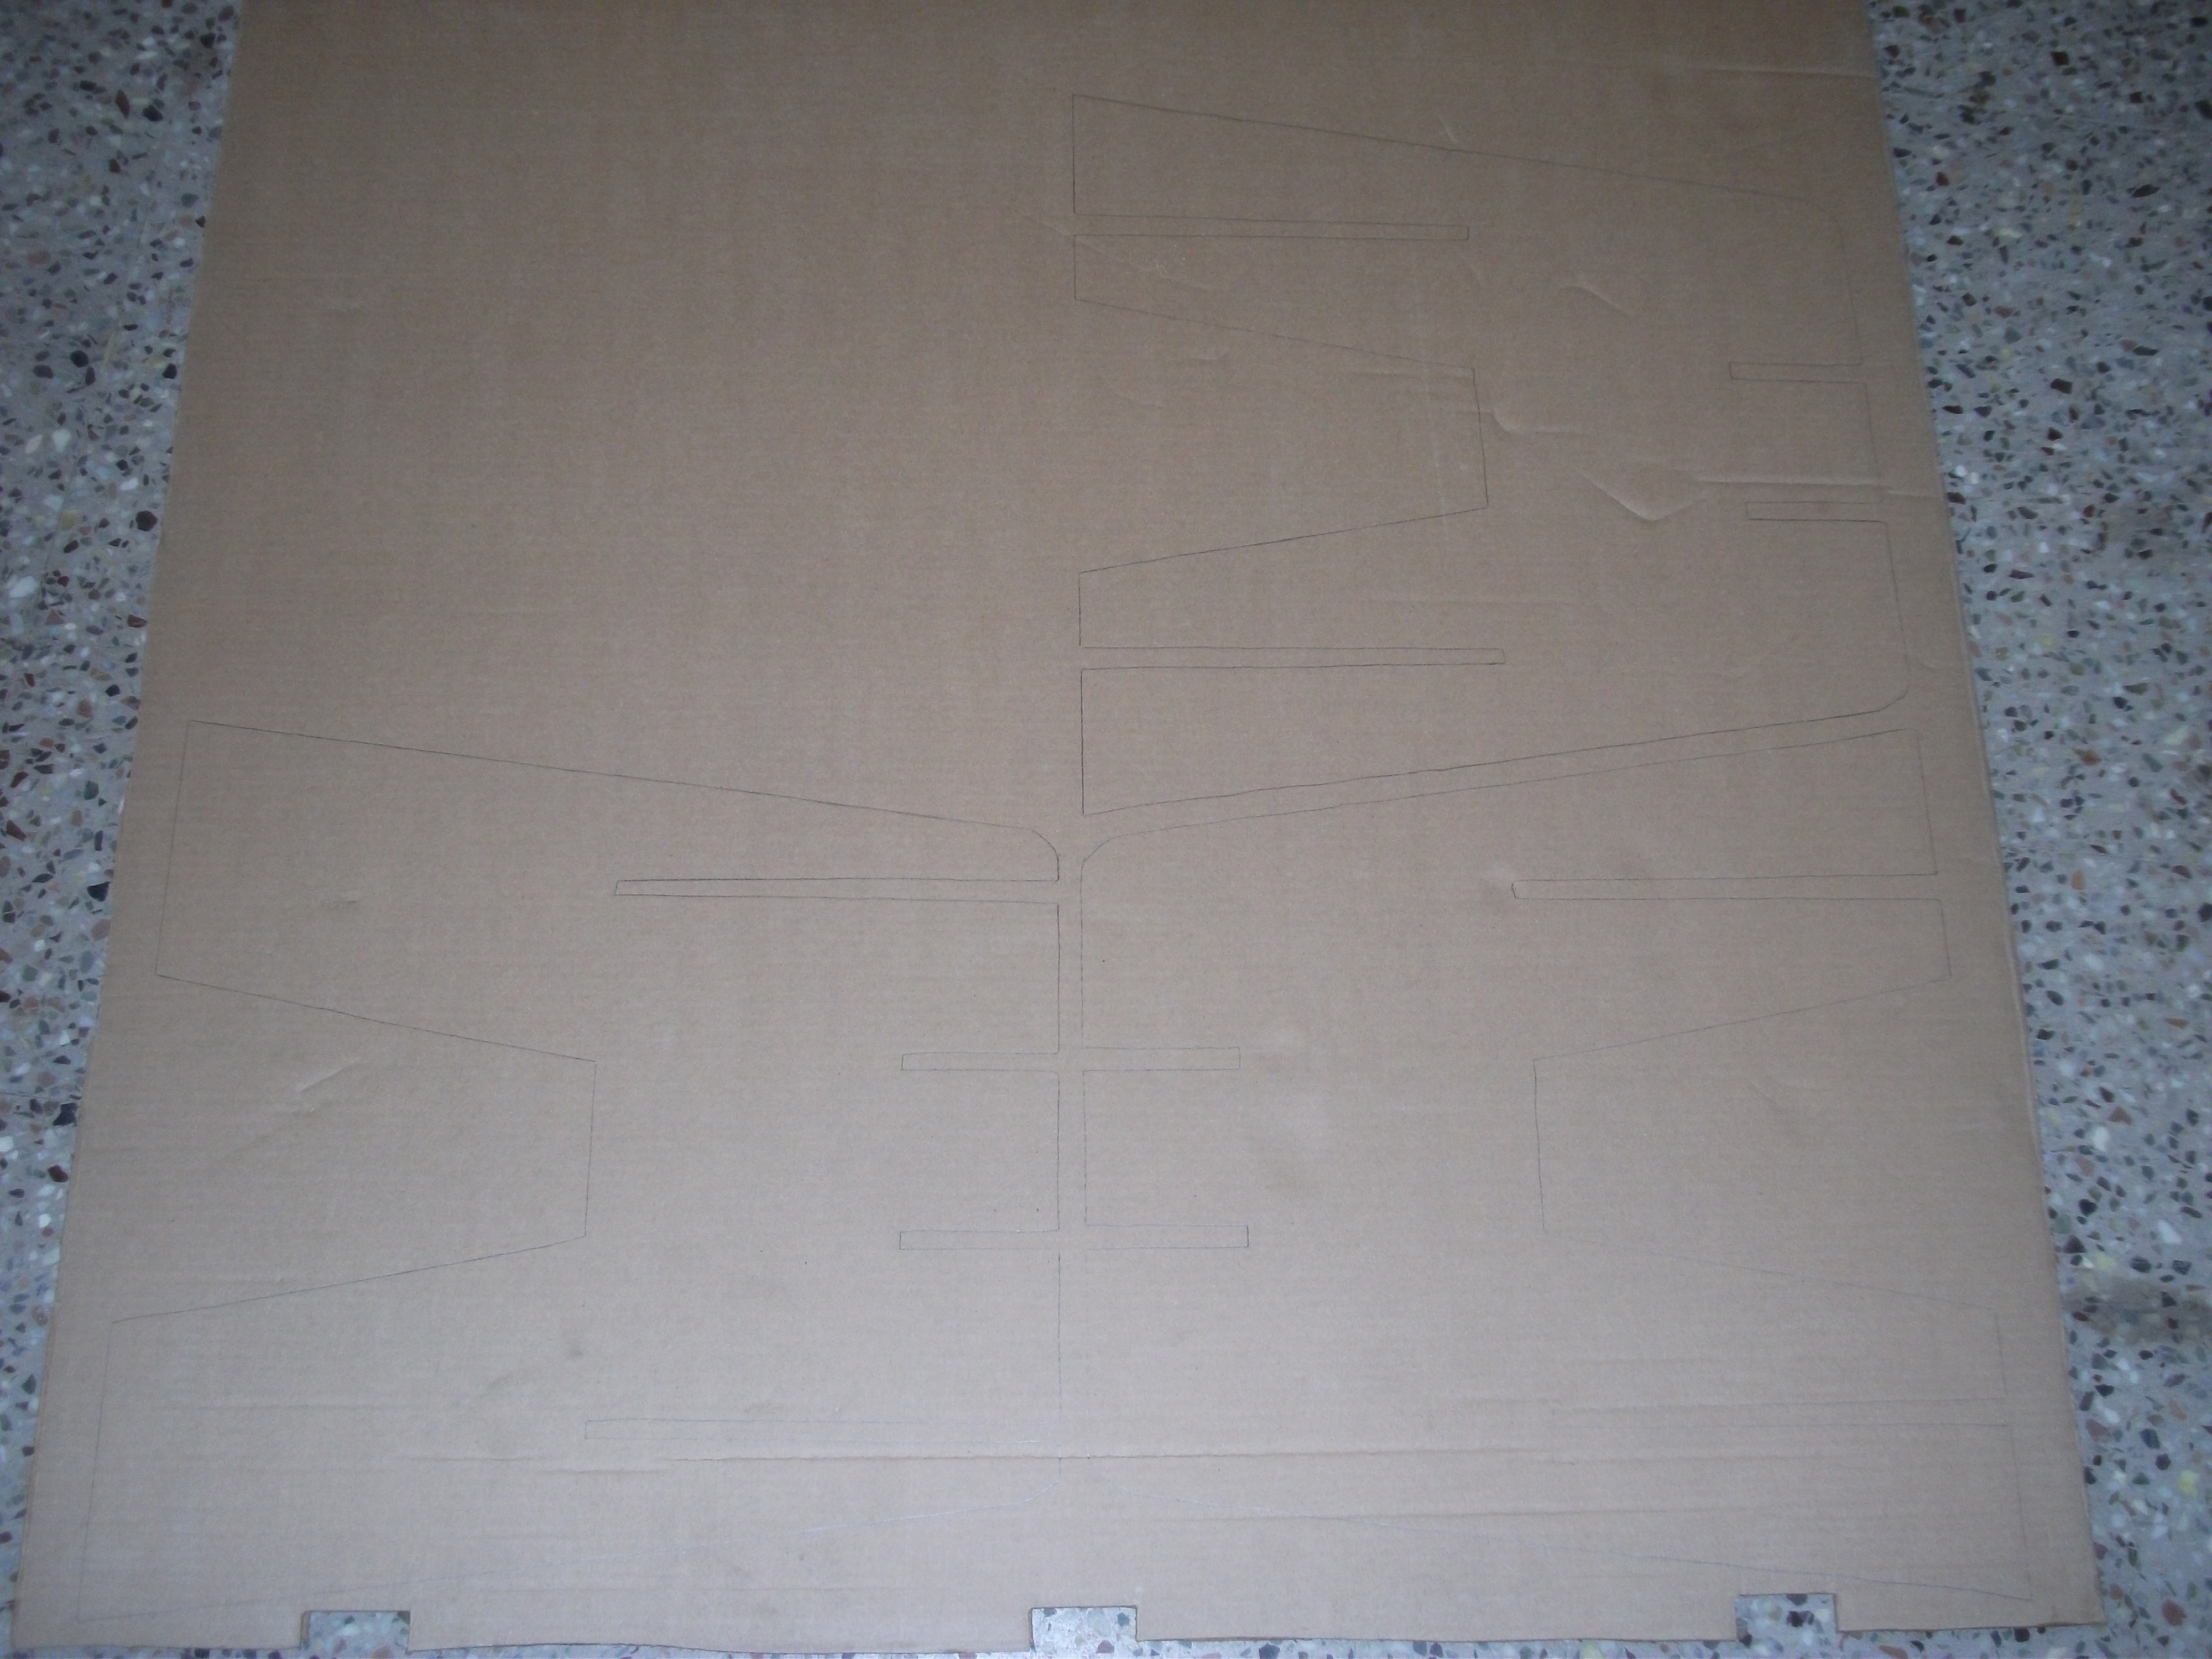 Picture of Tracing the Templates on Your Cardboard and Cutting Them Out